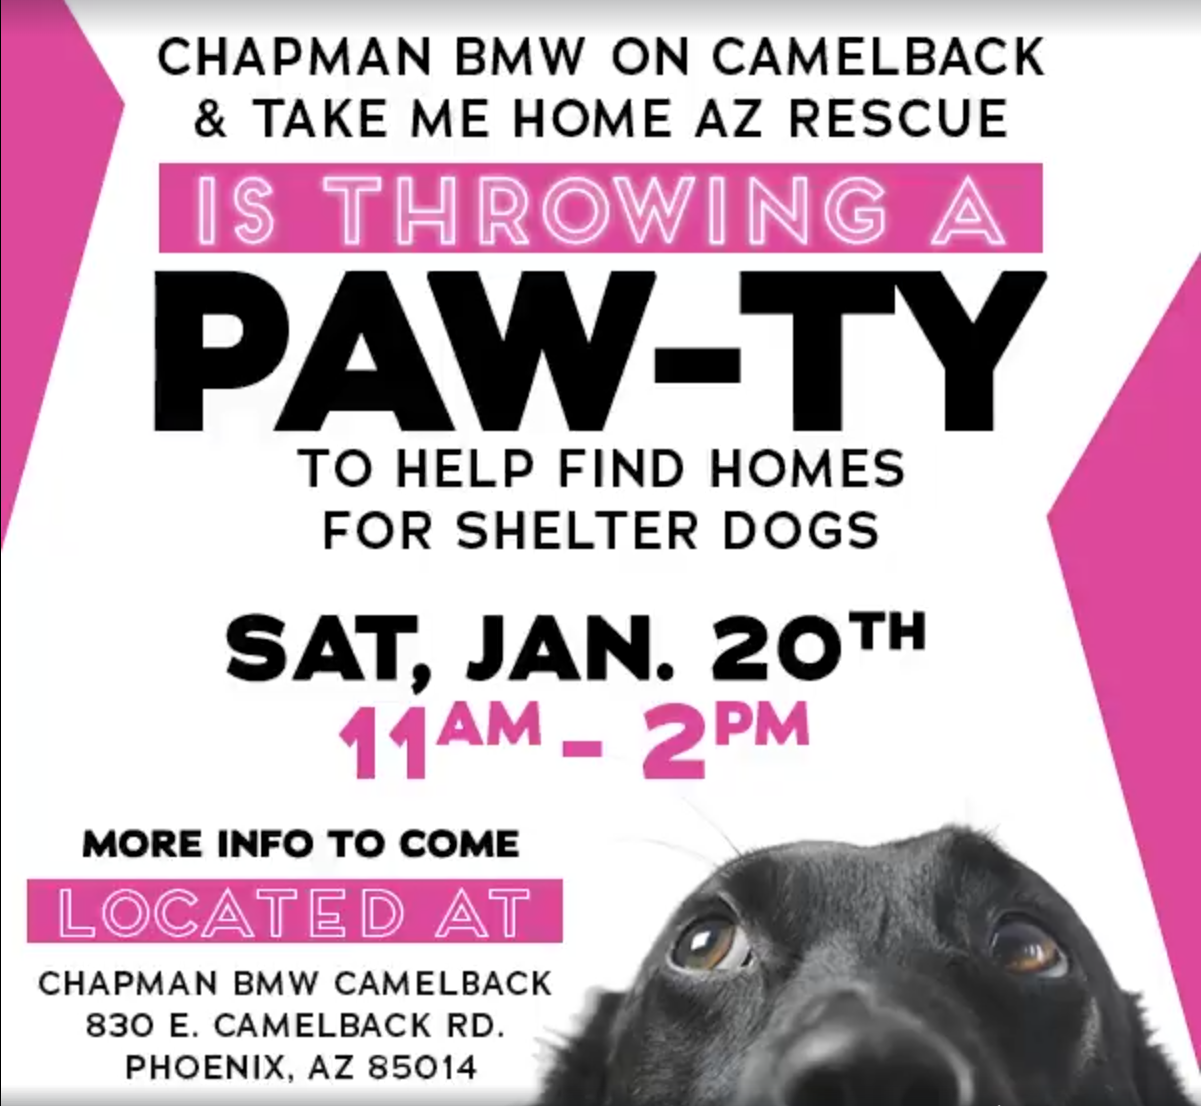 Chapman Bmw On Camelback >> Chapman BMW's Adoption PAW-TY! - Pawtown